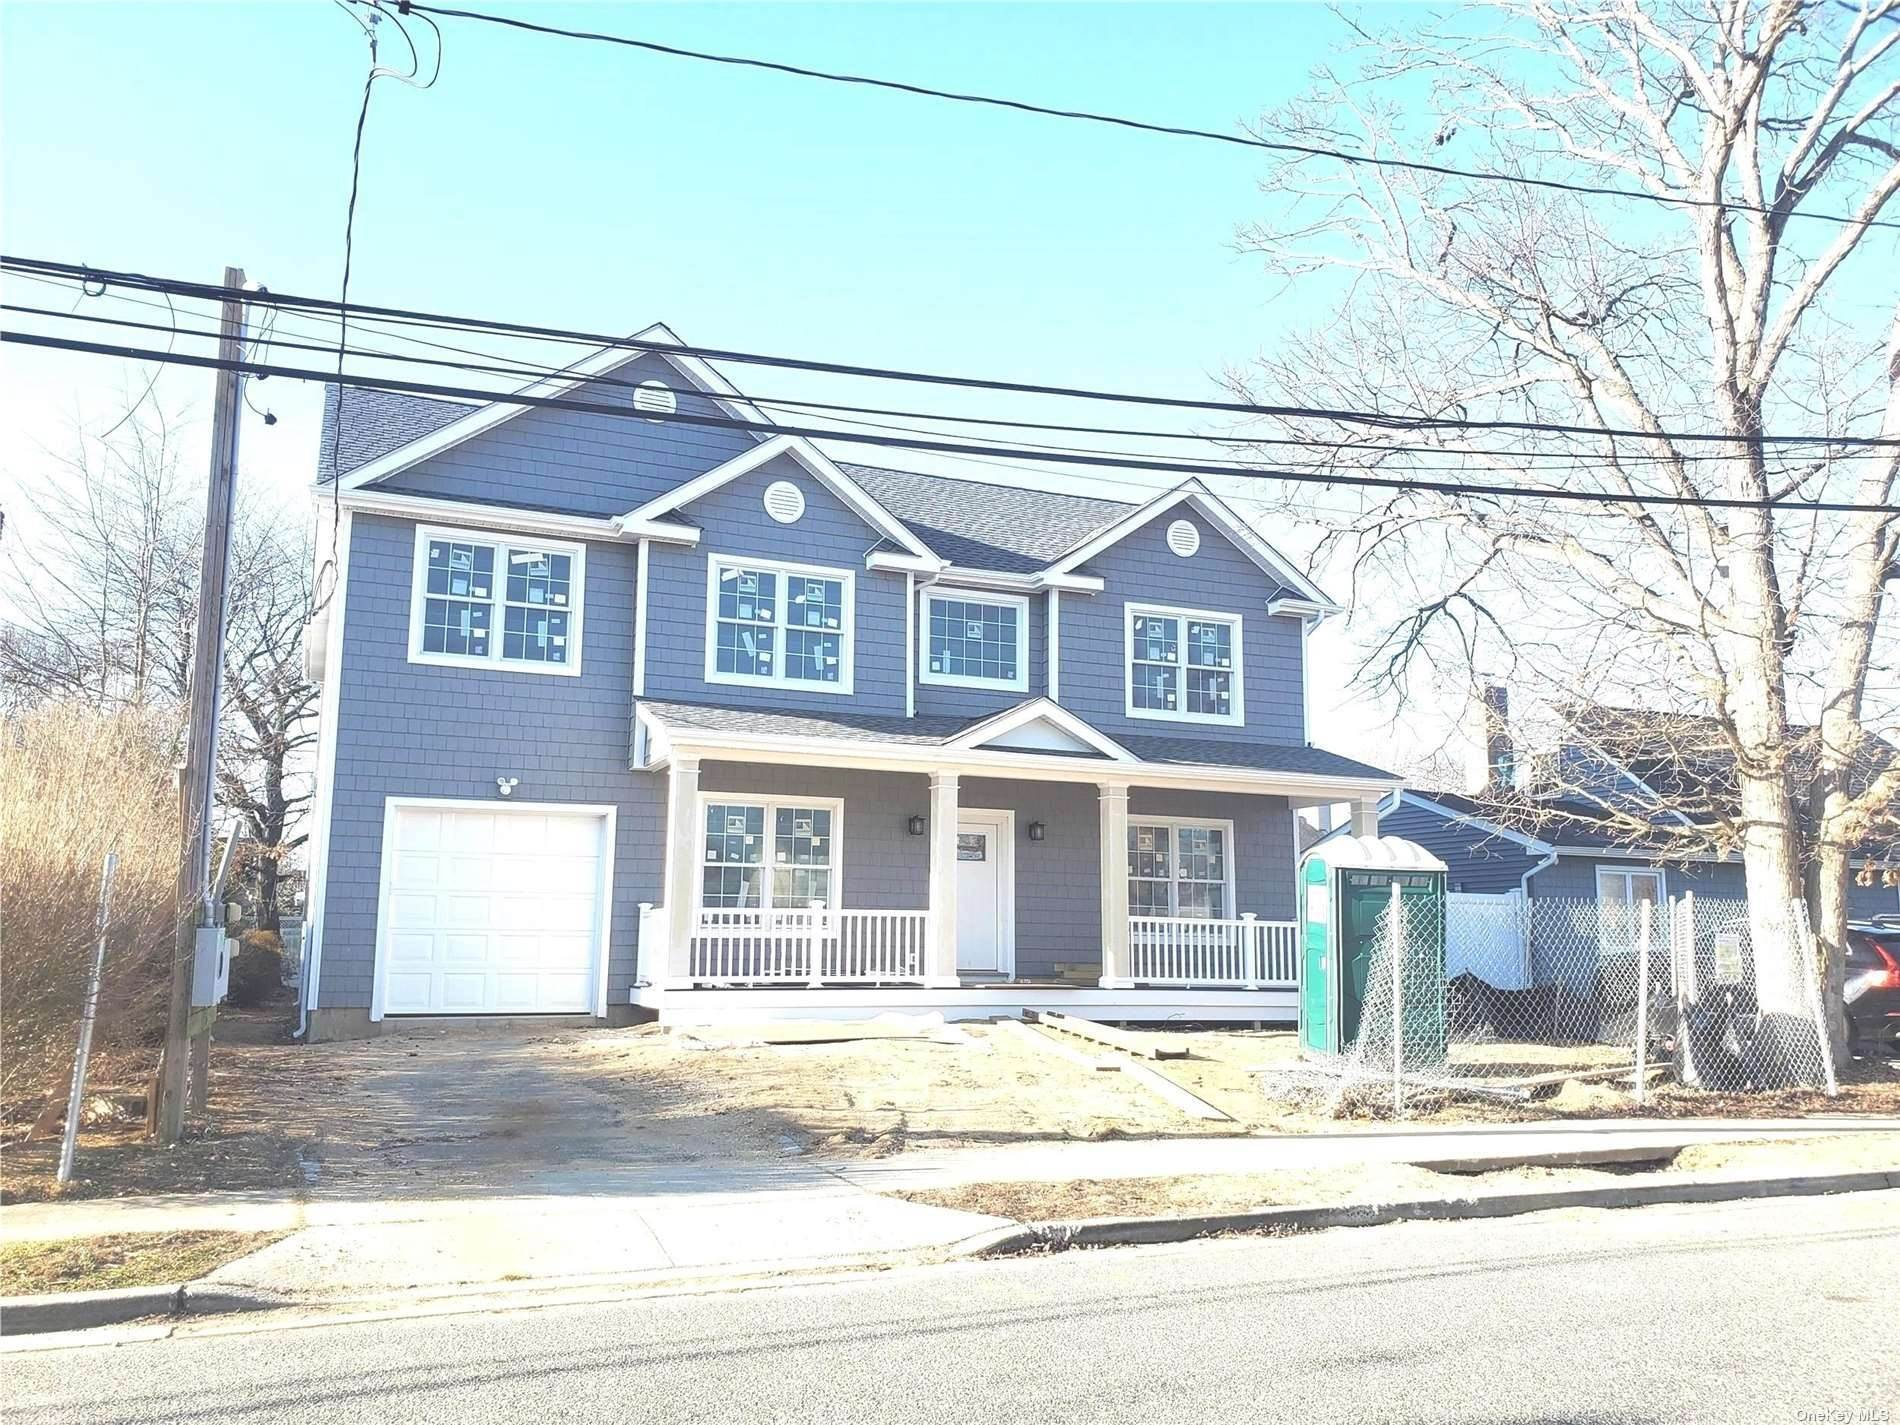 Residential for Sale at 154 Maple Street Massapequa Park, New York 11762 United States